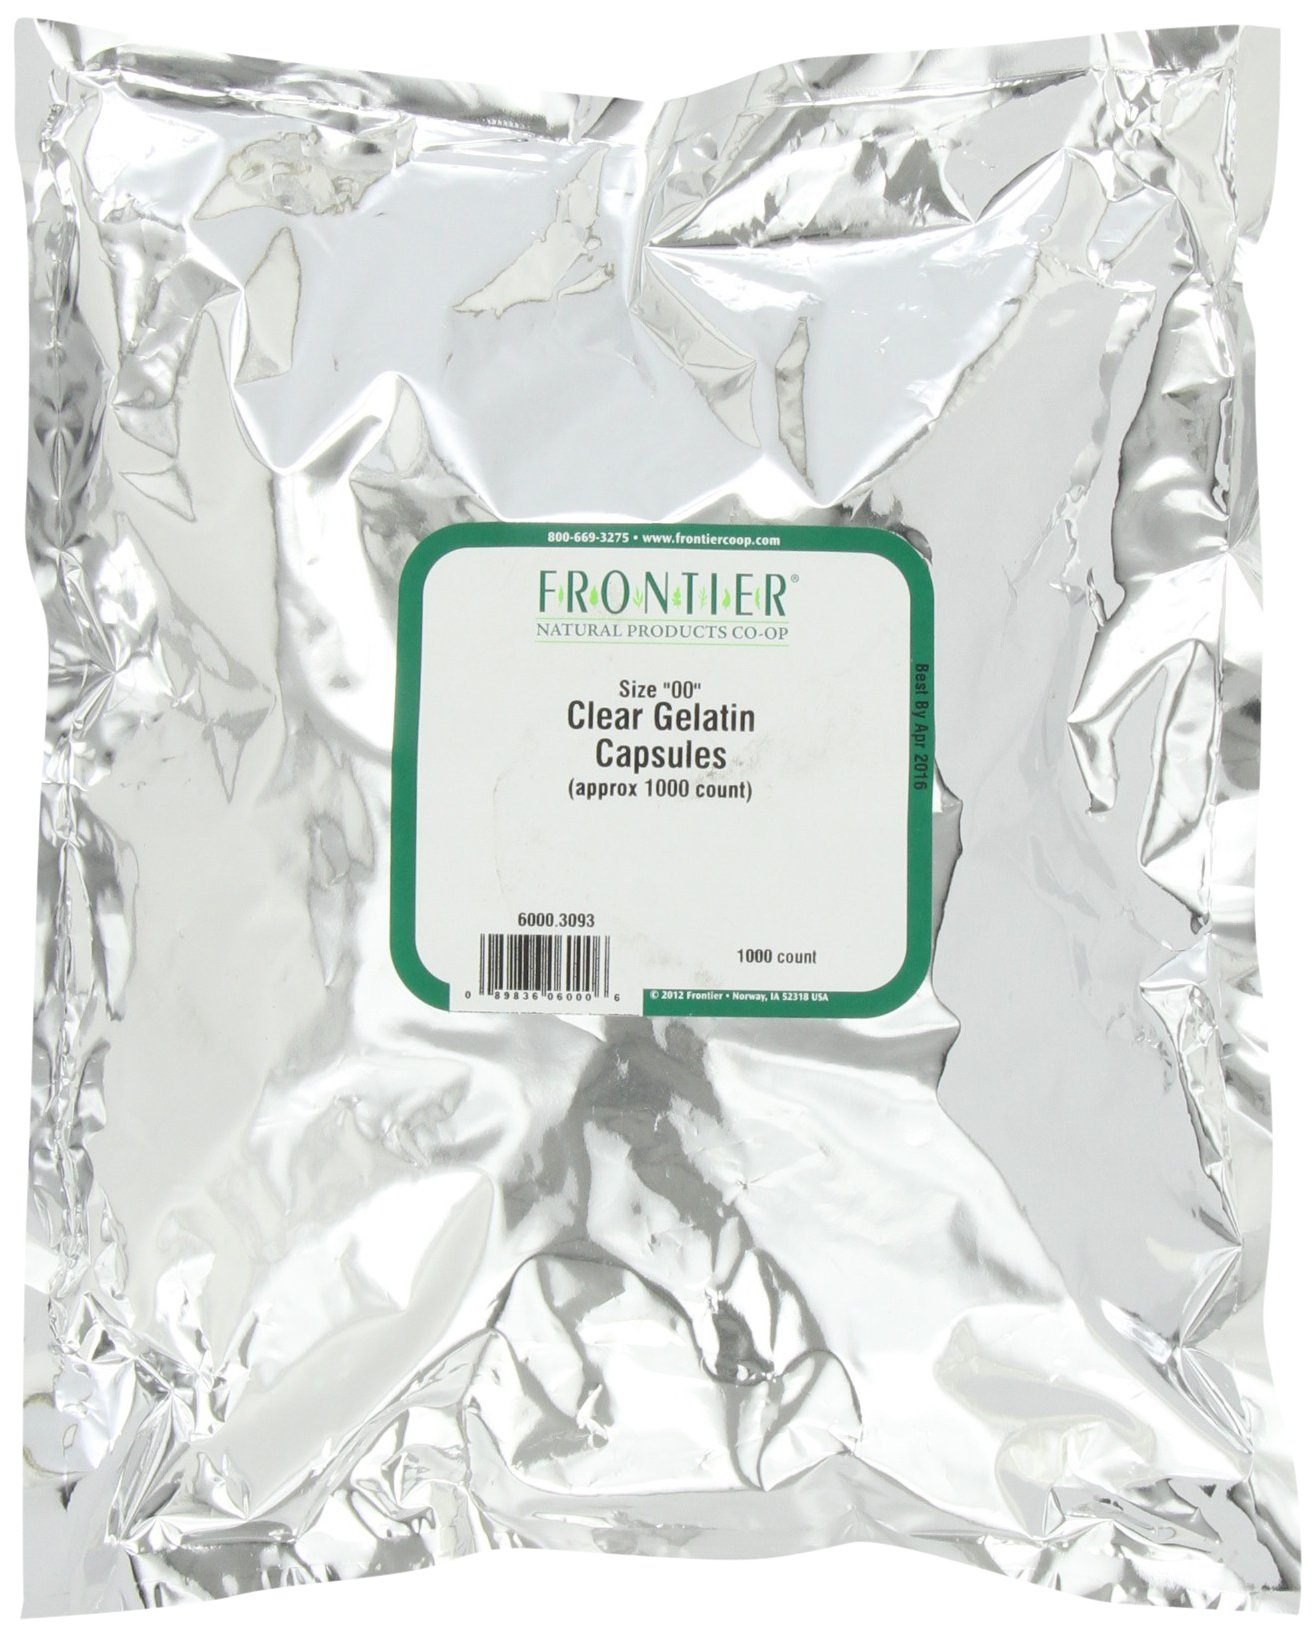 Frontier Gelatin Capsules Clear 00 1000, 4.64 Ounce Bag